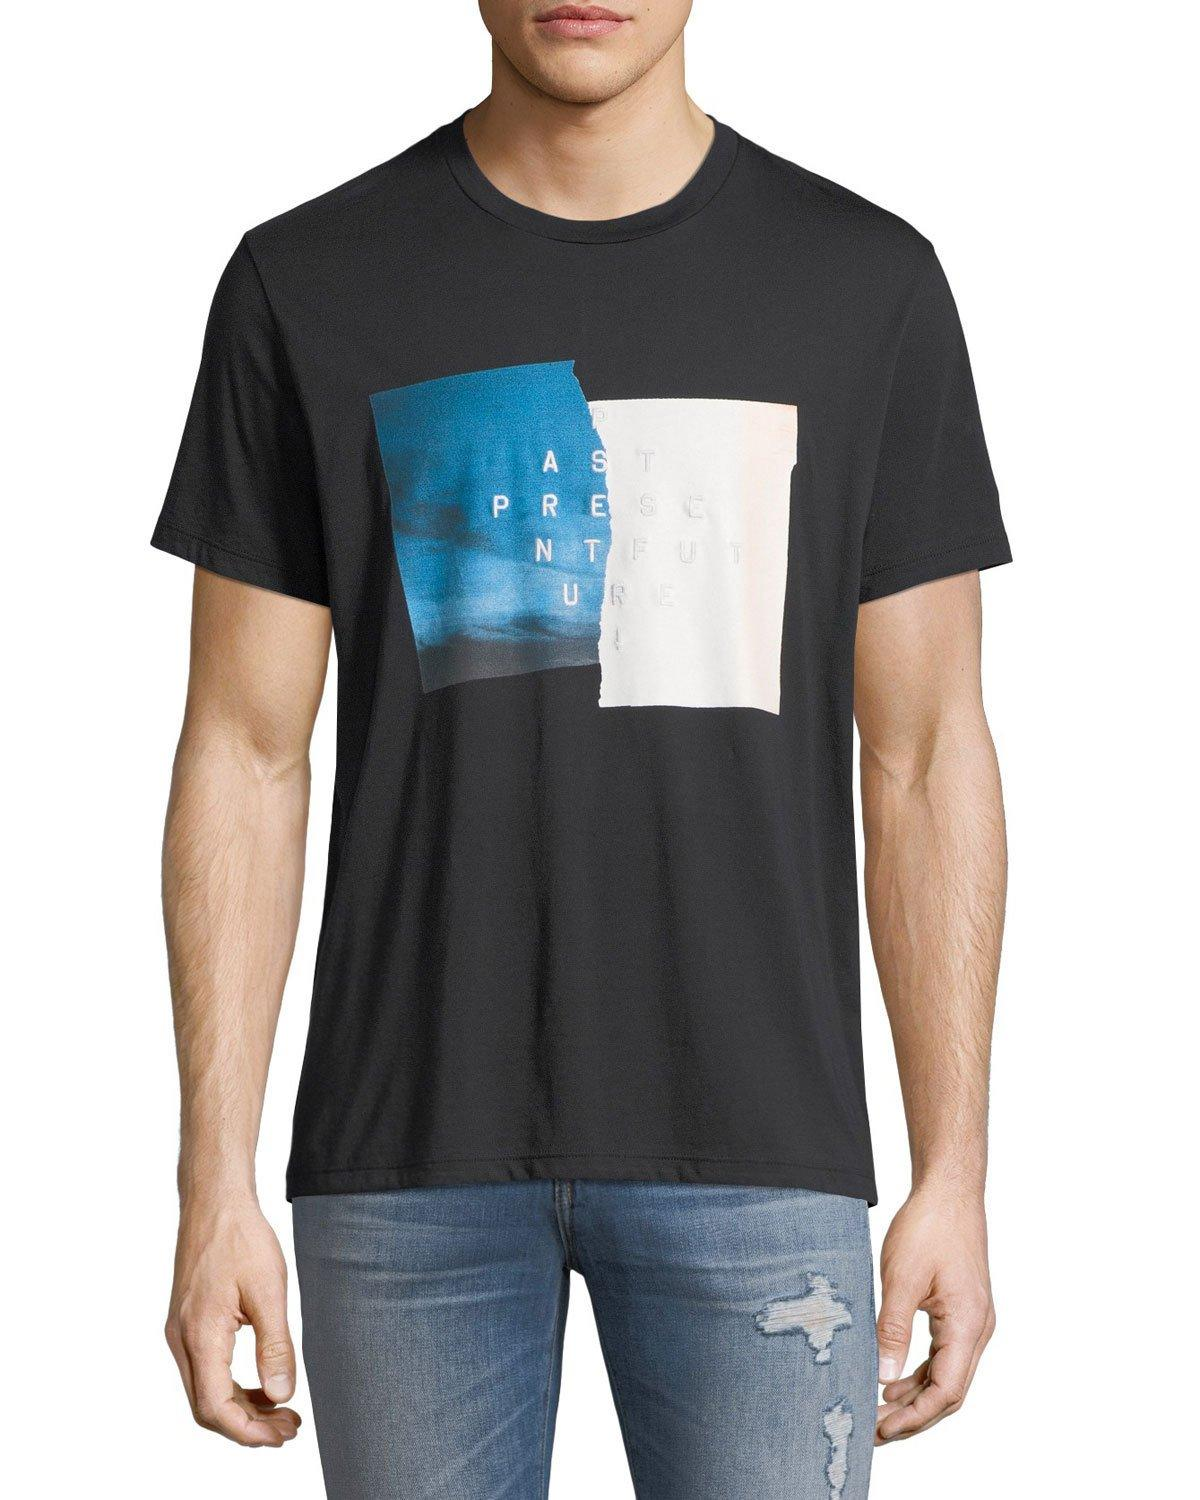 7 For All Mankind Men's Past Present Future Graphic T-Shirt In Black